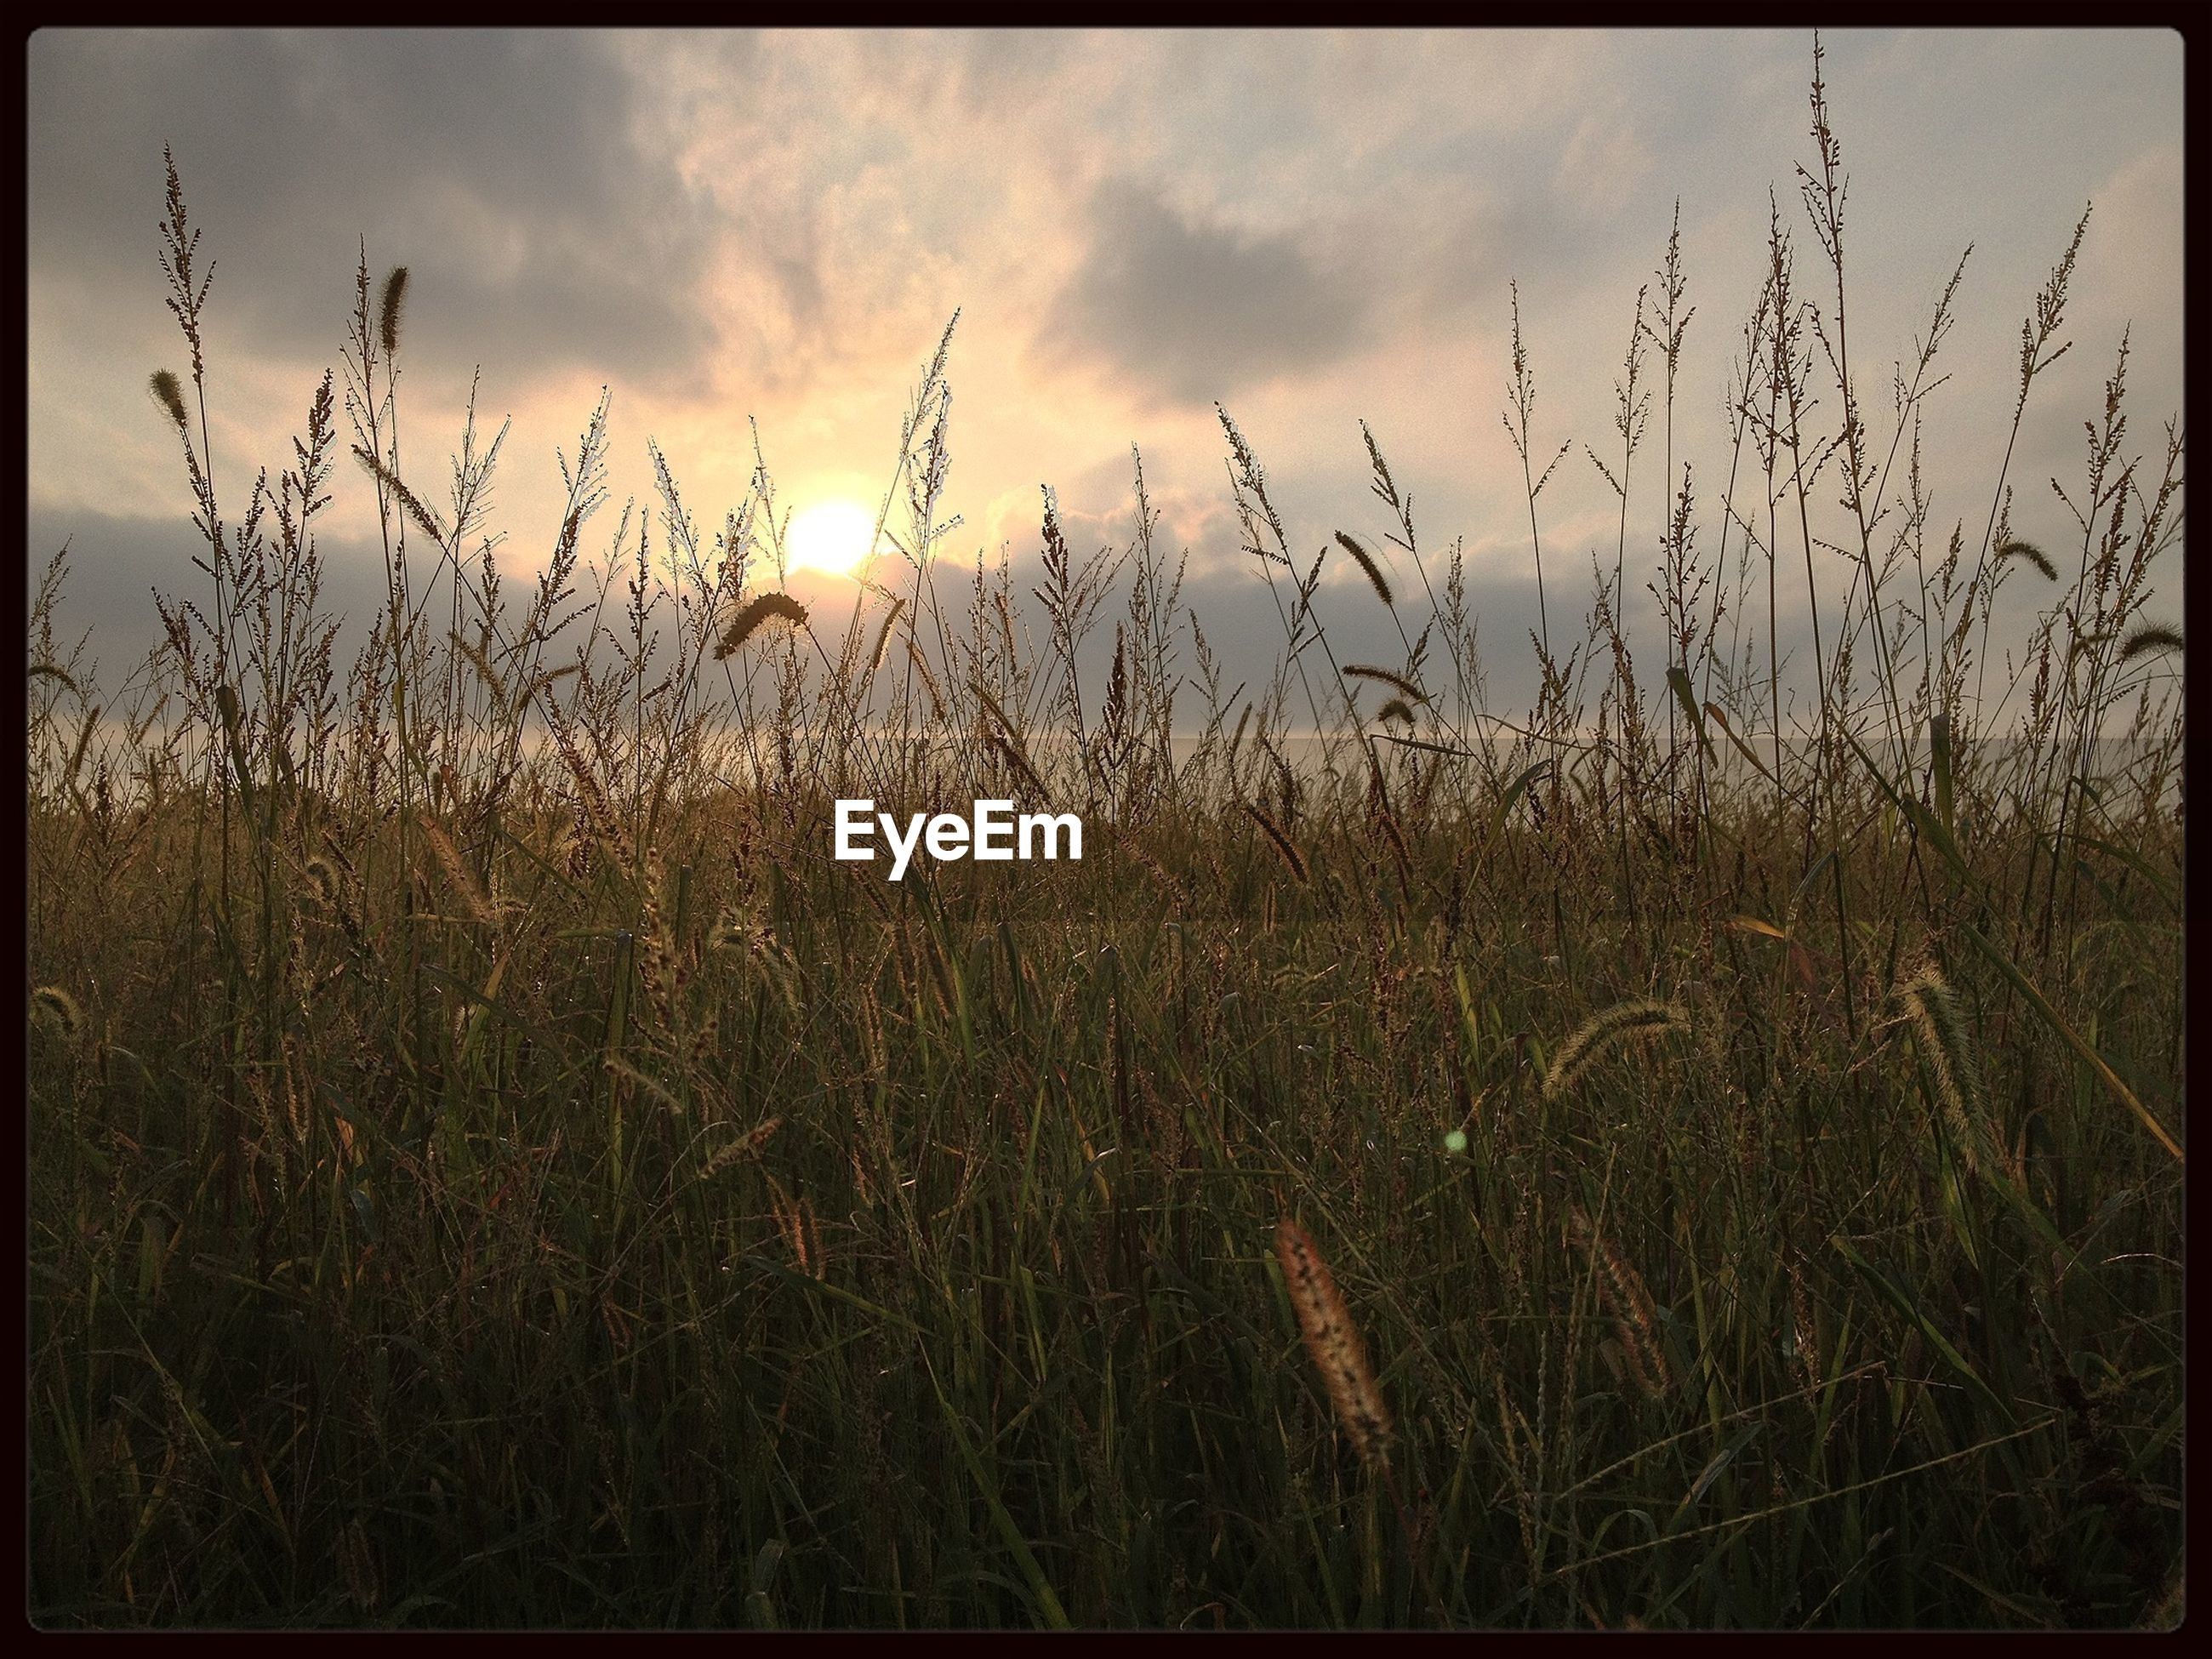 sky, field, cloud - sky, grass, sunset, tranquility, tranquil scene, transfer print, plant, sun, growth, nature, auto post production filter, beauty in nature, scenics, landscape, cloudy, cloud, sunlight, idyllic